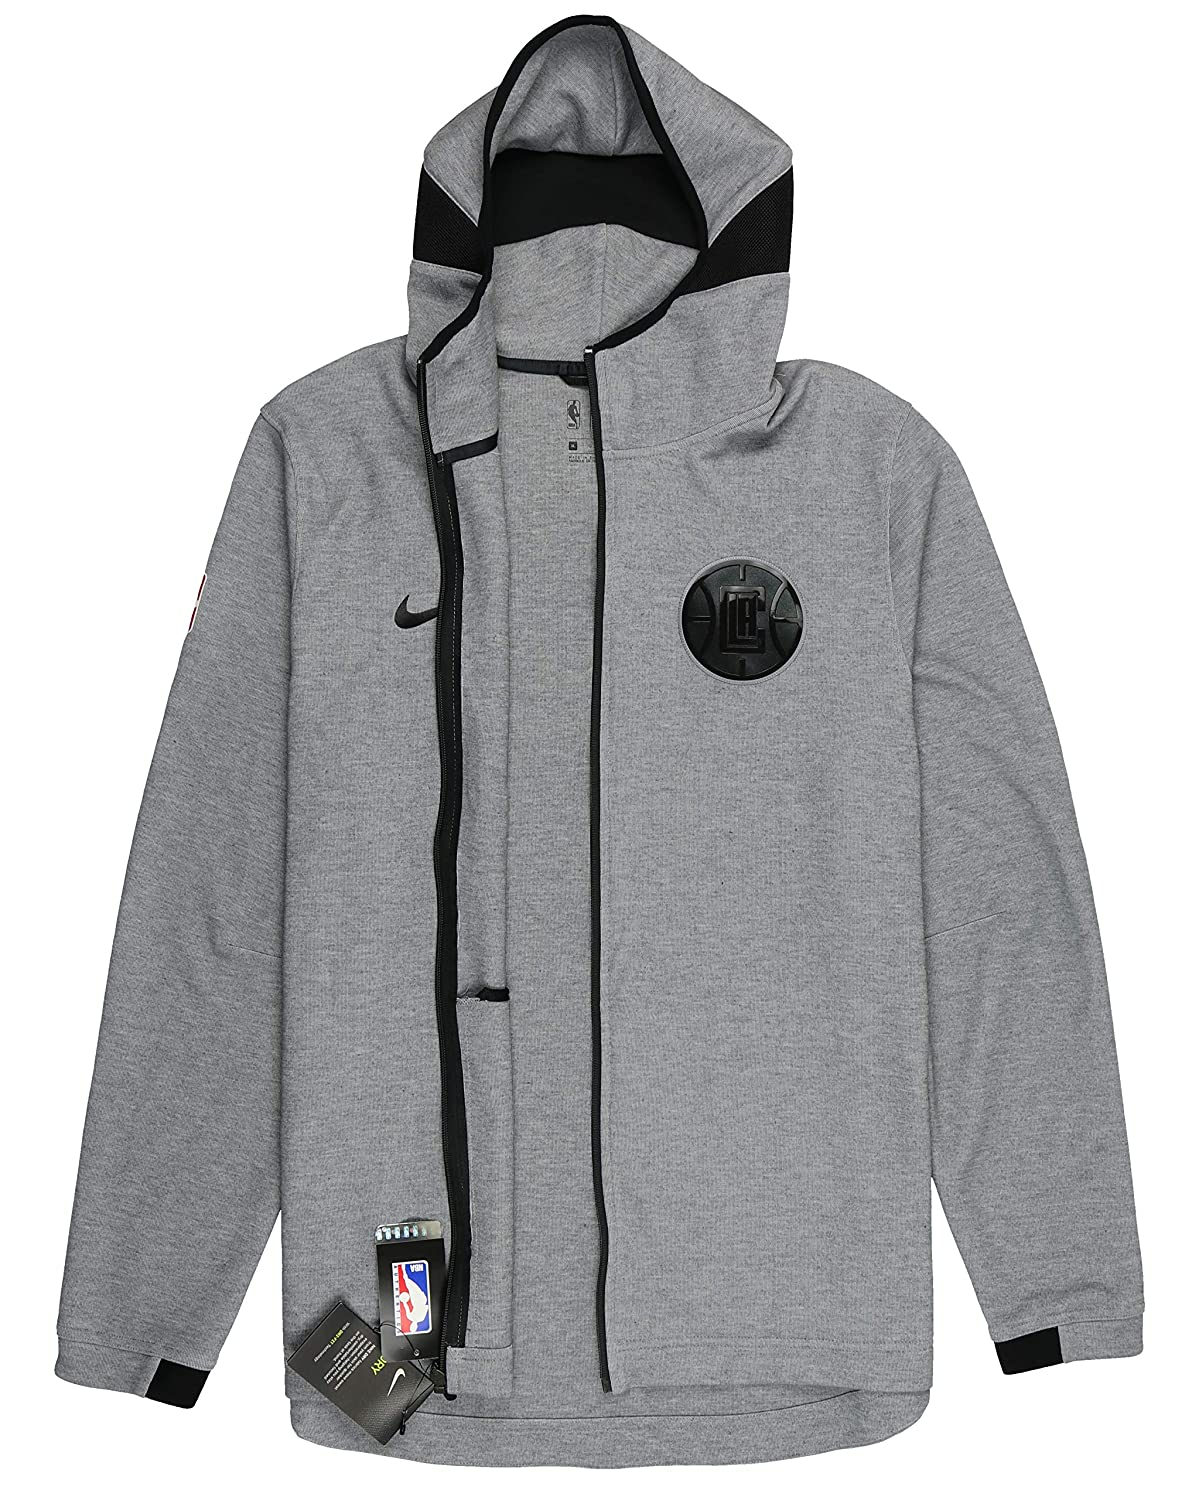 3bdeb6833db Amazon.com  Nike Men s Los Angeles Clippers Showtime Full Zip Hoodie  XX-Large Gray Black  Shoes